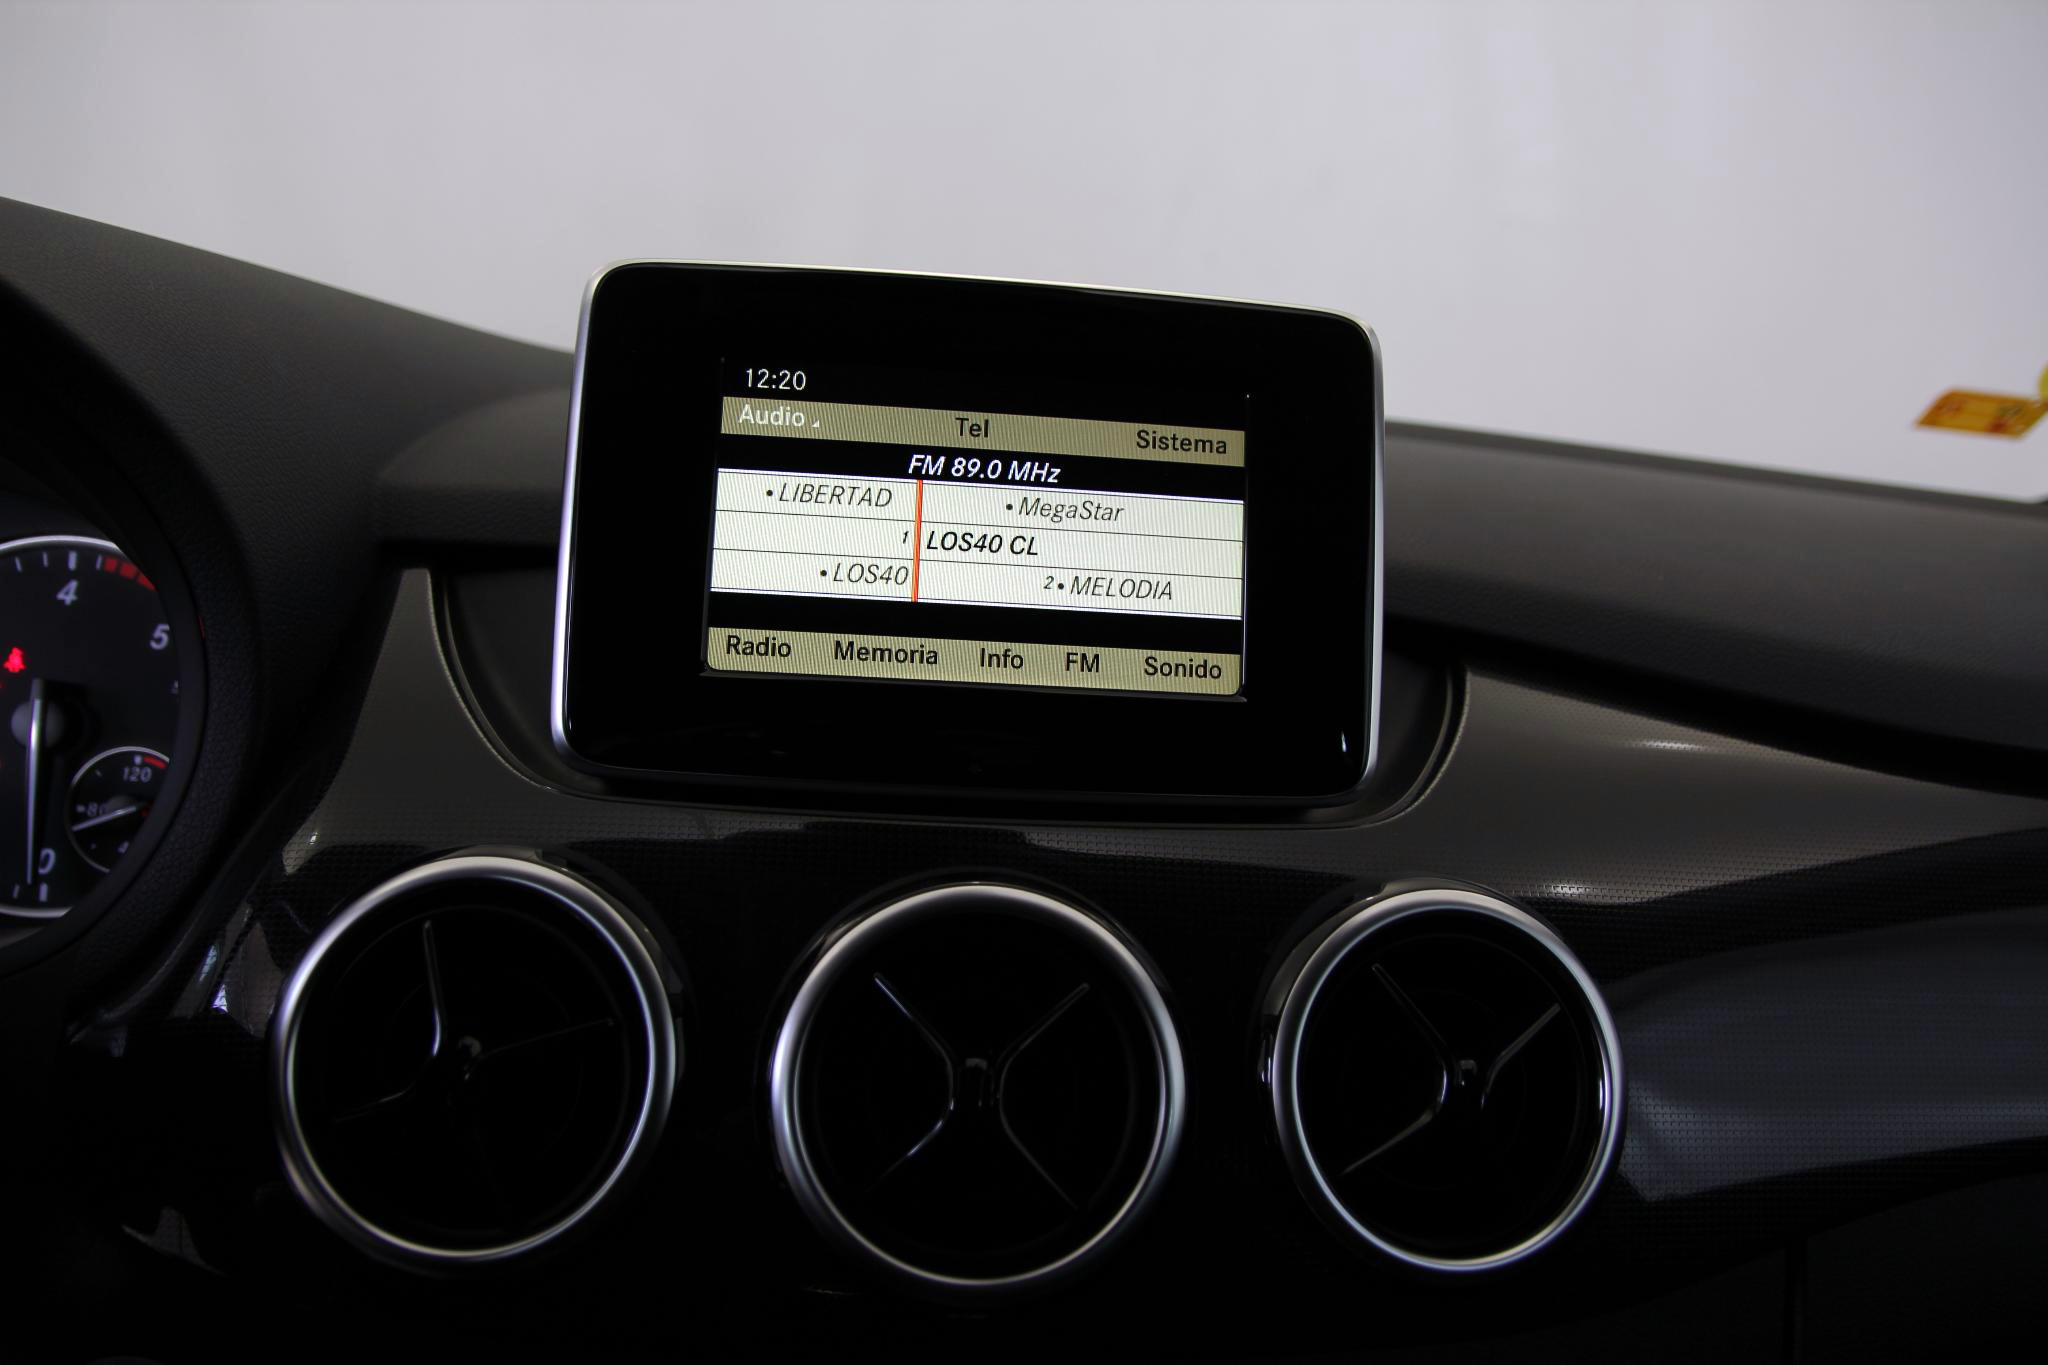 Mercedes-Benz Clase B CLASE B 180 CDI BLUE EFFICIENCY 5P imagen 25